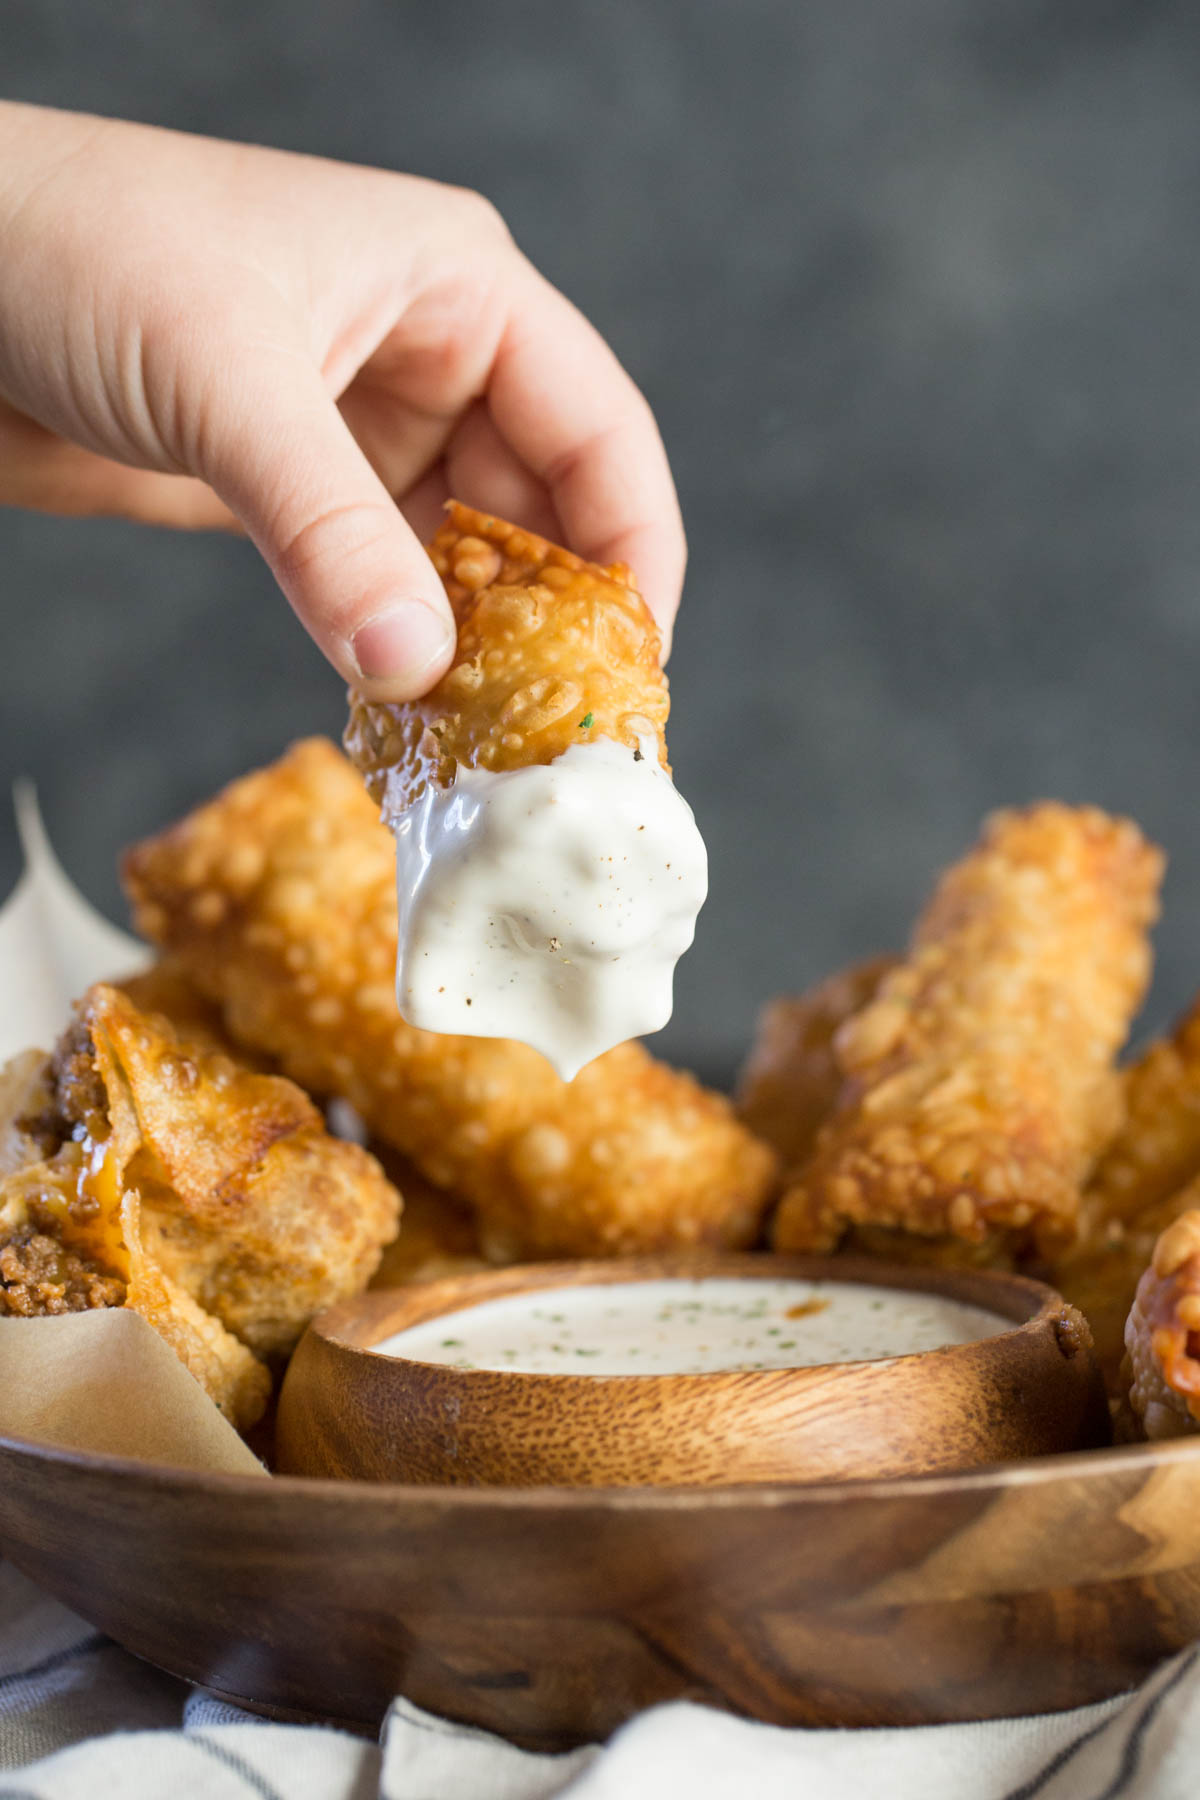 A half of a Fried Sloppy Joe Roll that has been dipped into a small bowl of ranch dip, that is surrounded by more Fried Sloppy Joe Rolls.